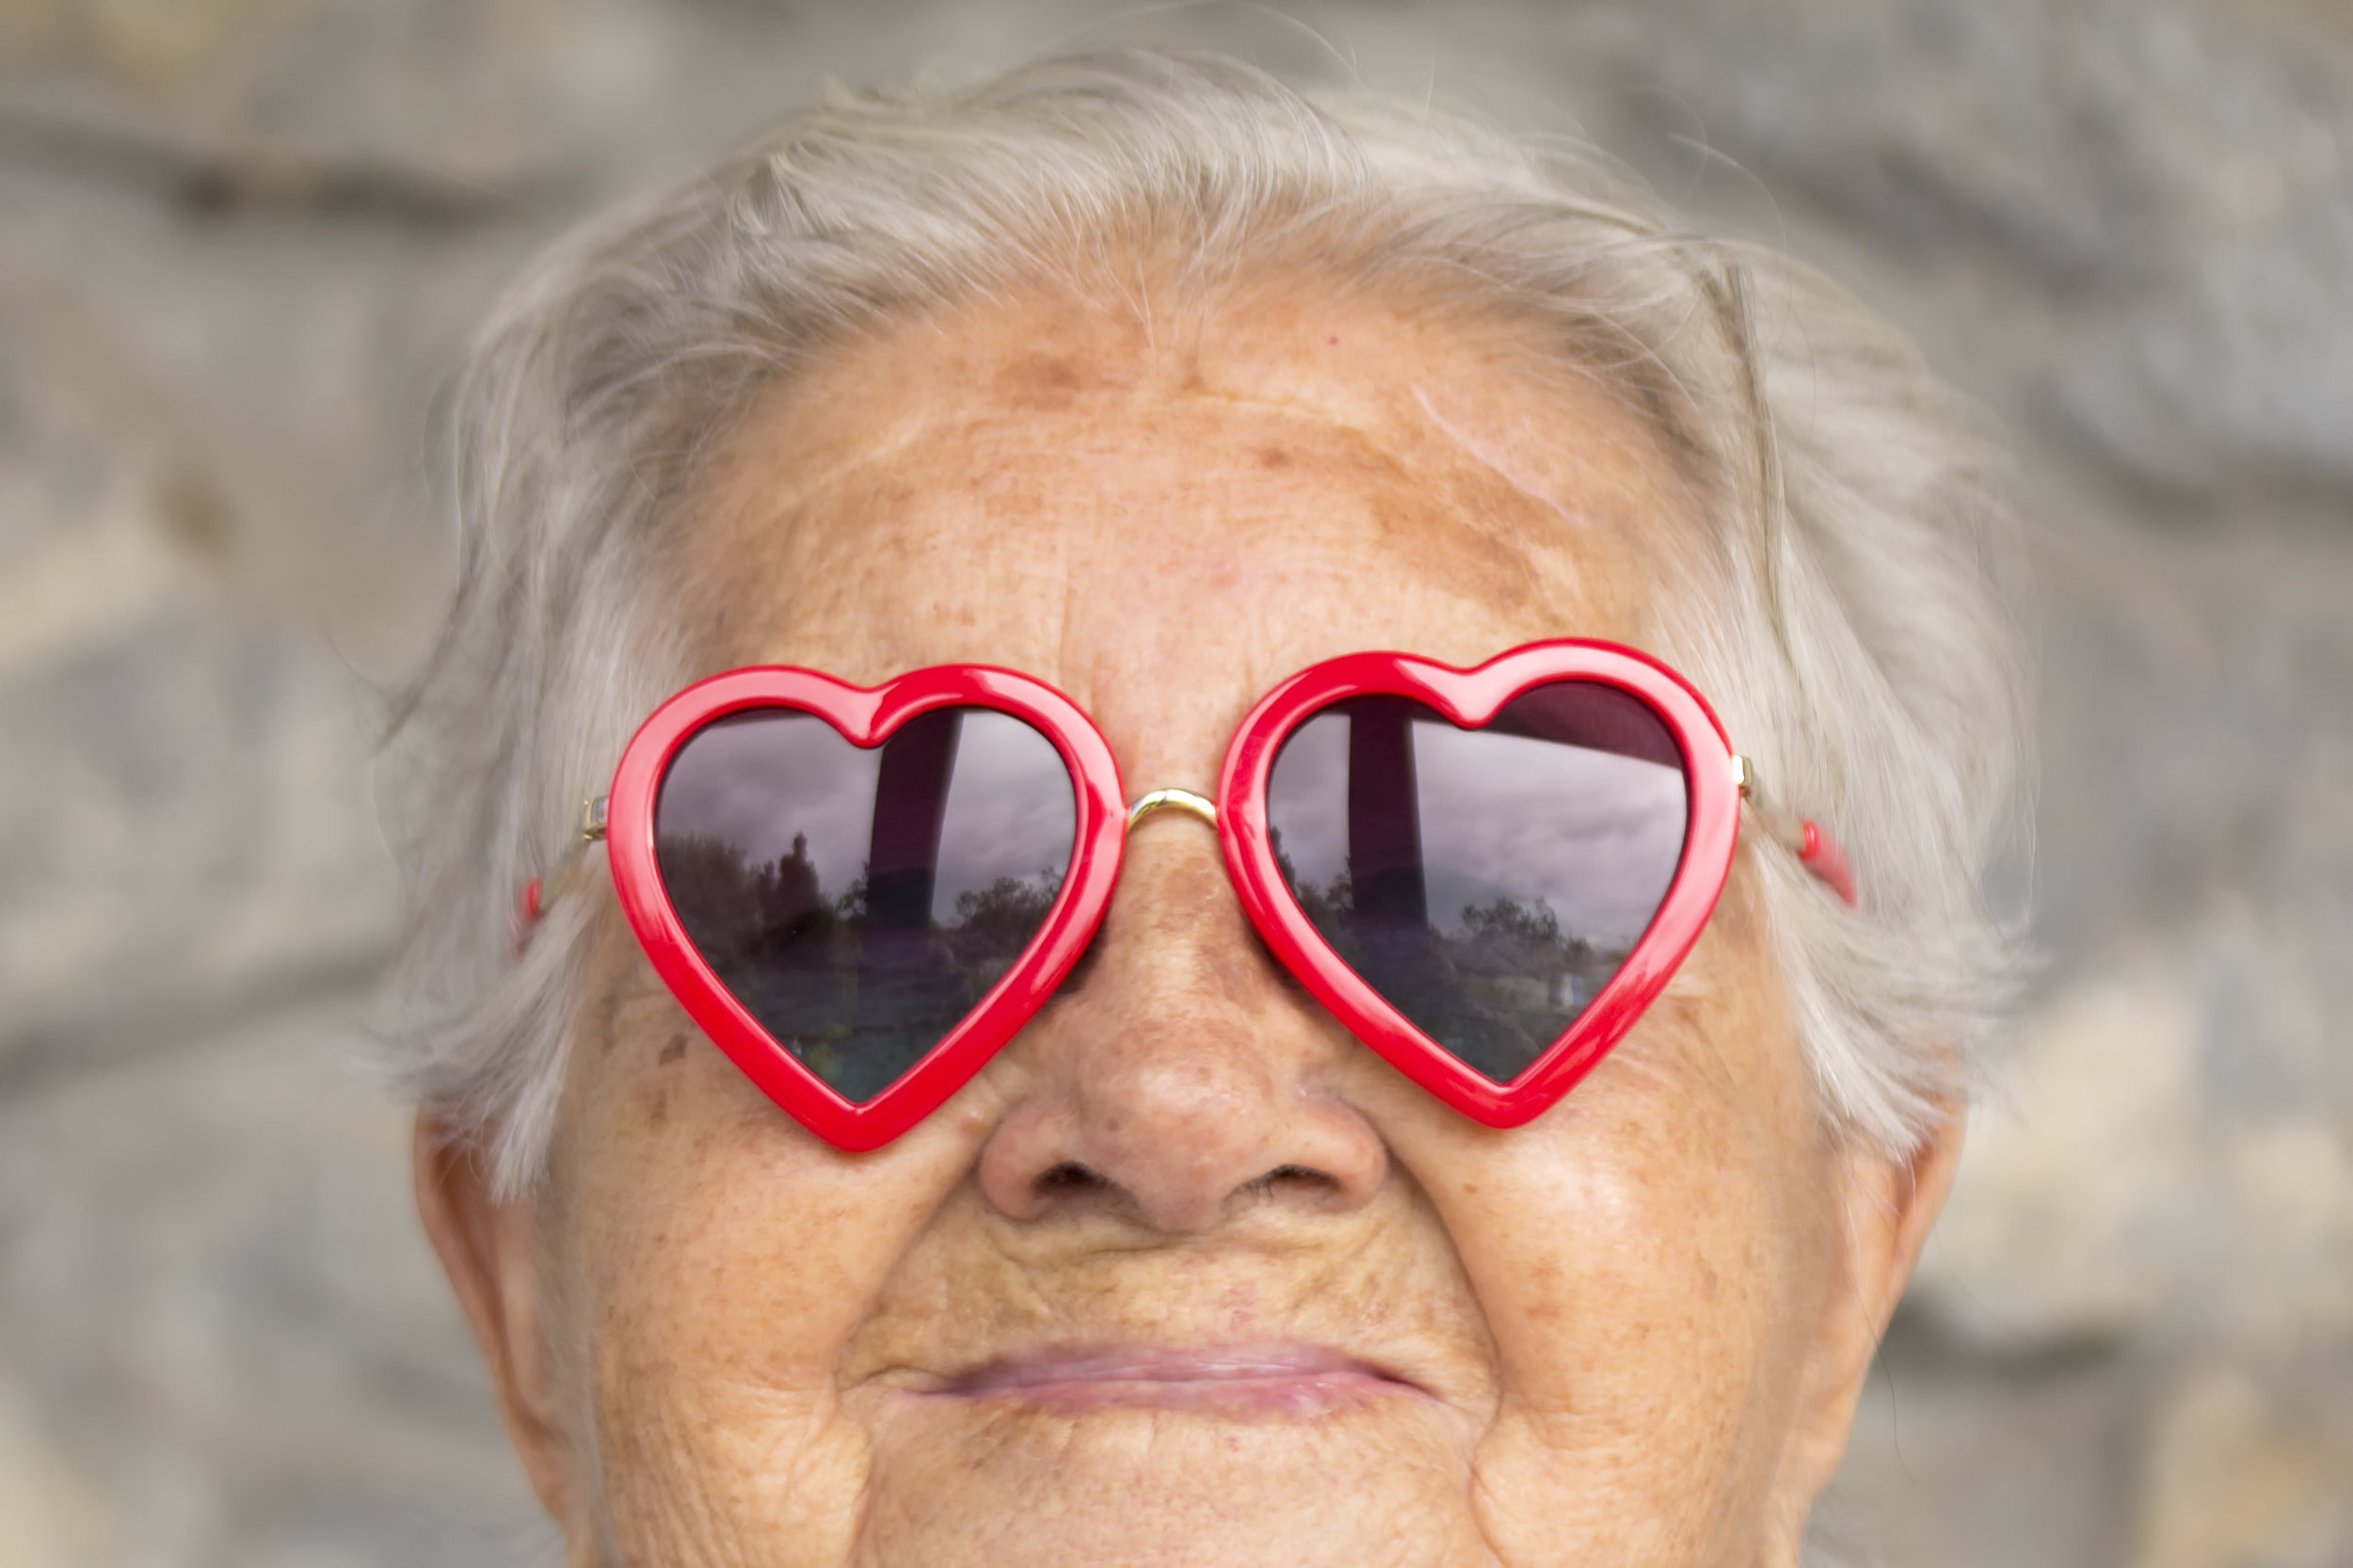 Thank you for being a caregiver! -